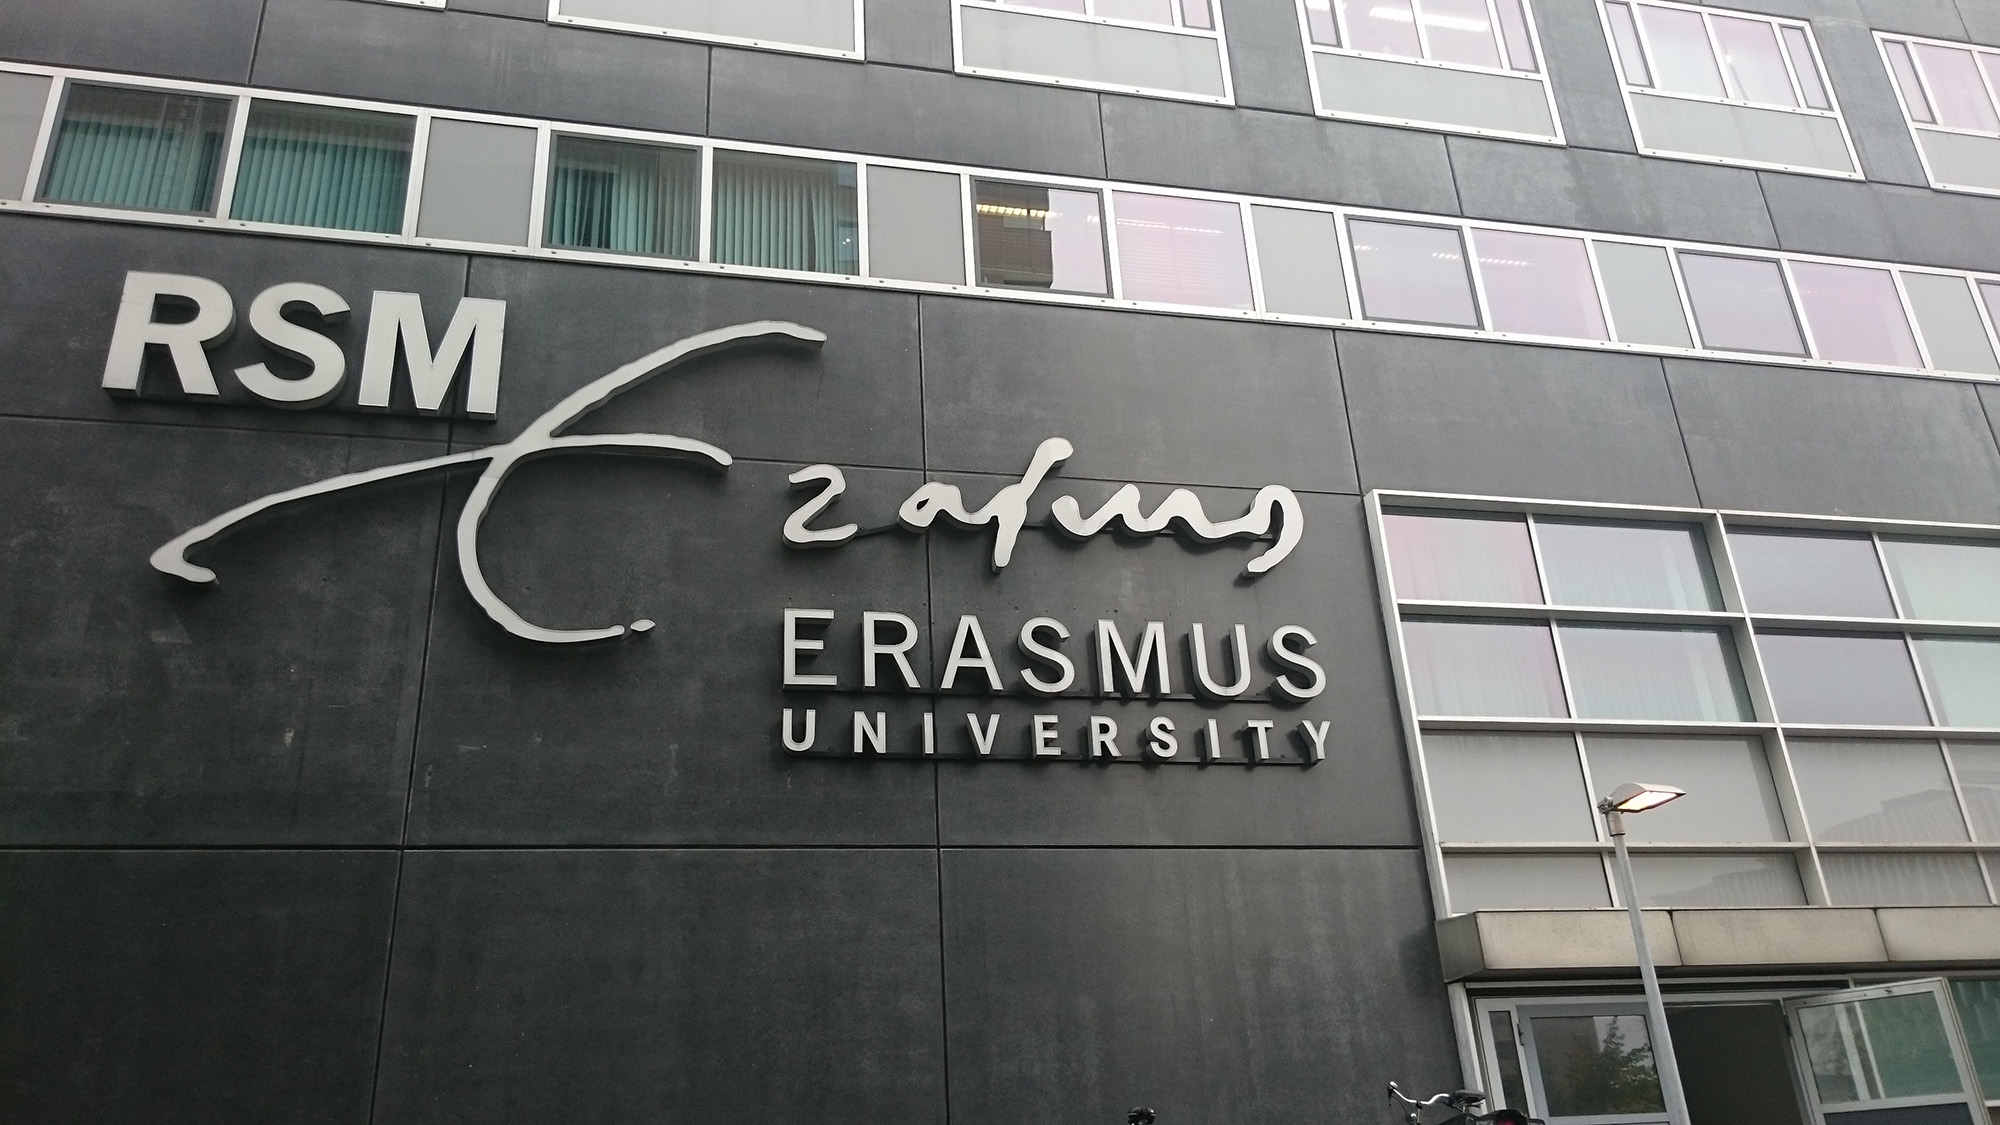 rsm erasmus rotterdam school of management 2